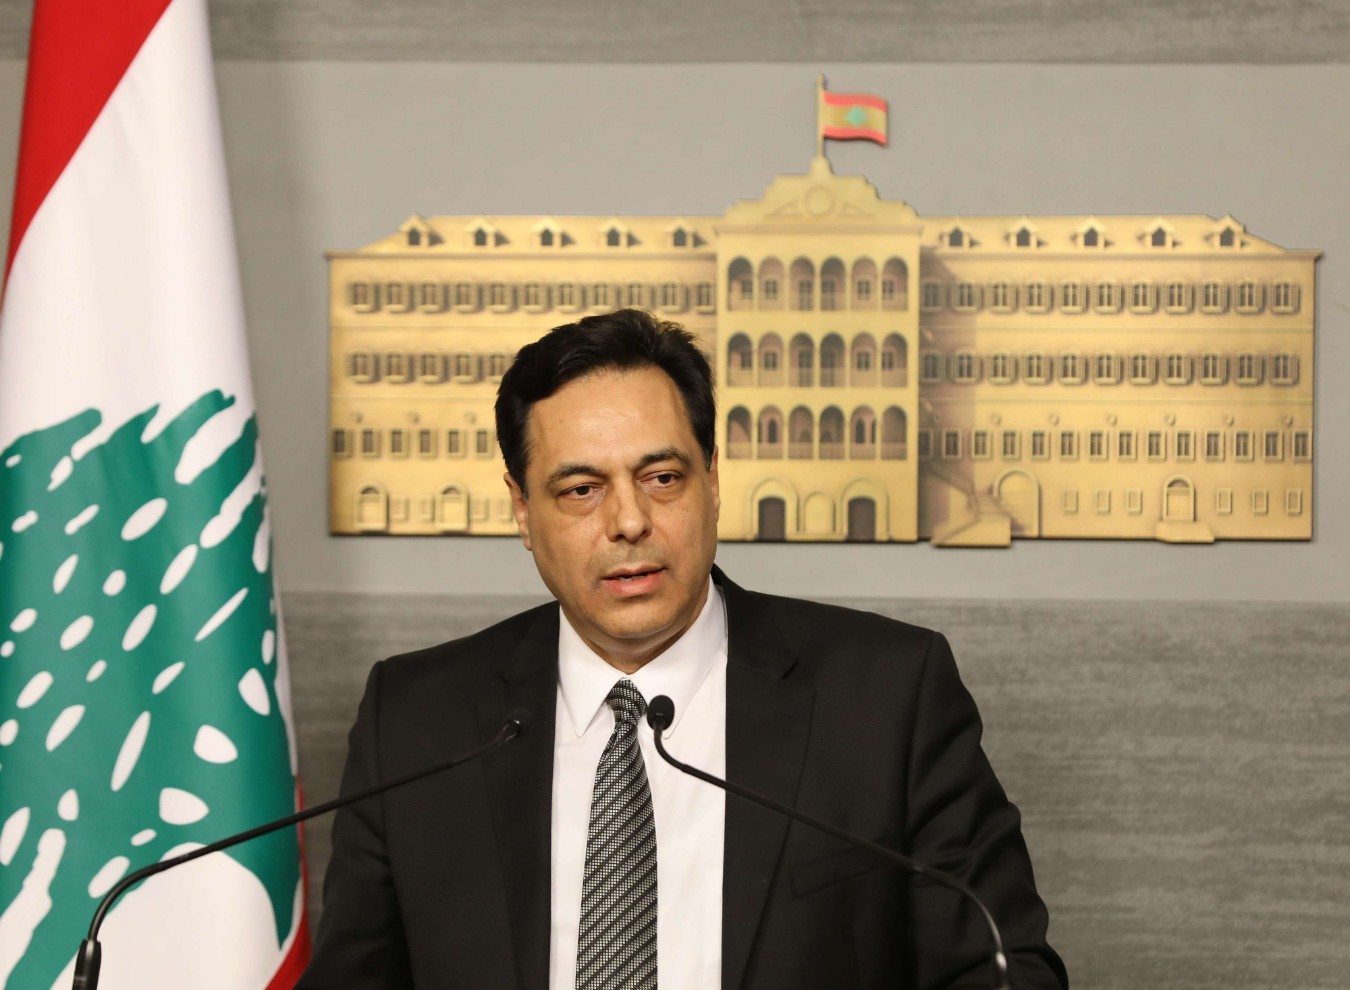 A handout picture provided by the Lebanese photo agency Dalati and Nohra on March 11, 2020 shows Prime Minister HassanDiab delivering a statement at the governmental palace in the capital Beirut. (AFP)